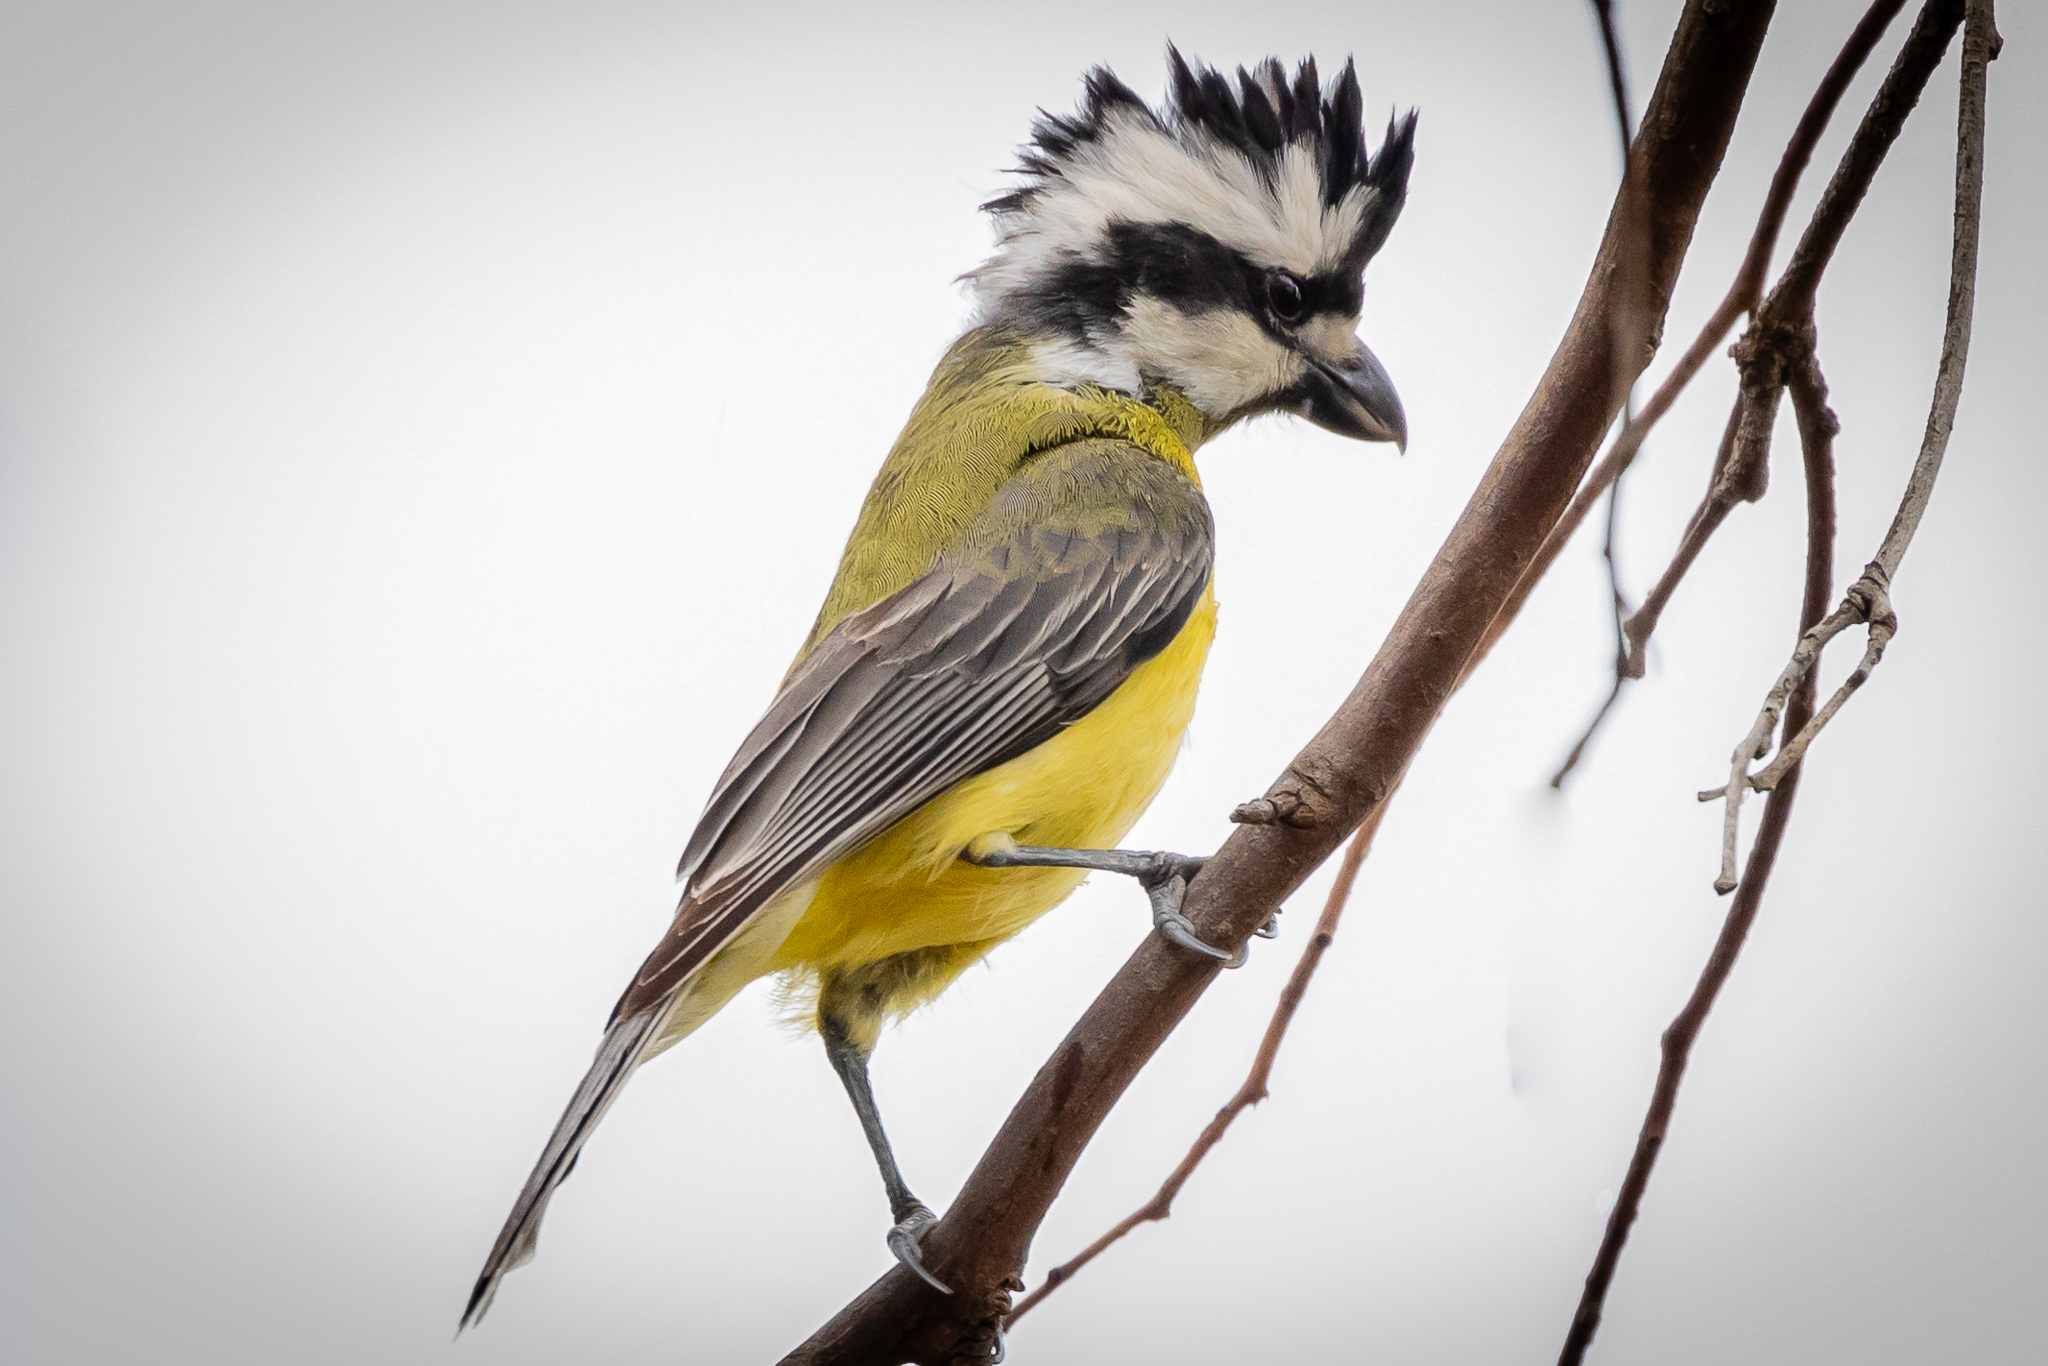 The Crested Shrike-tit is an insect eating bird but occasionally eats seeds and fruit. It uses its strong short bill to tear bark from trees and find insects. This bird was on a bush regeneration site planted by participants in the Cowra Woodland Birds Program.